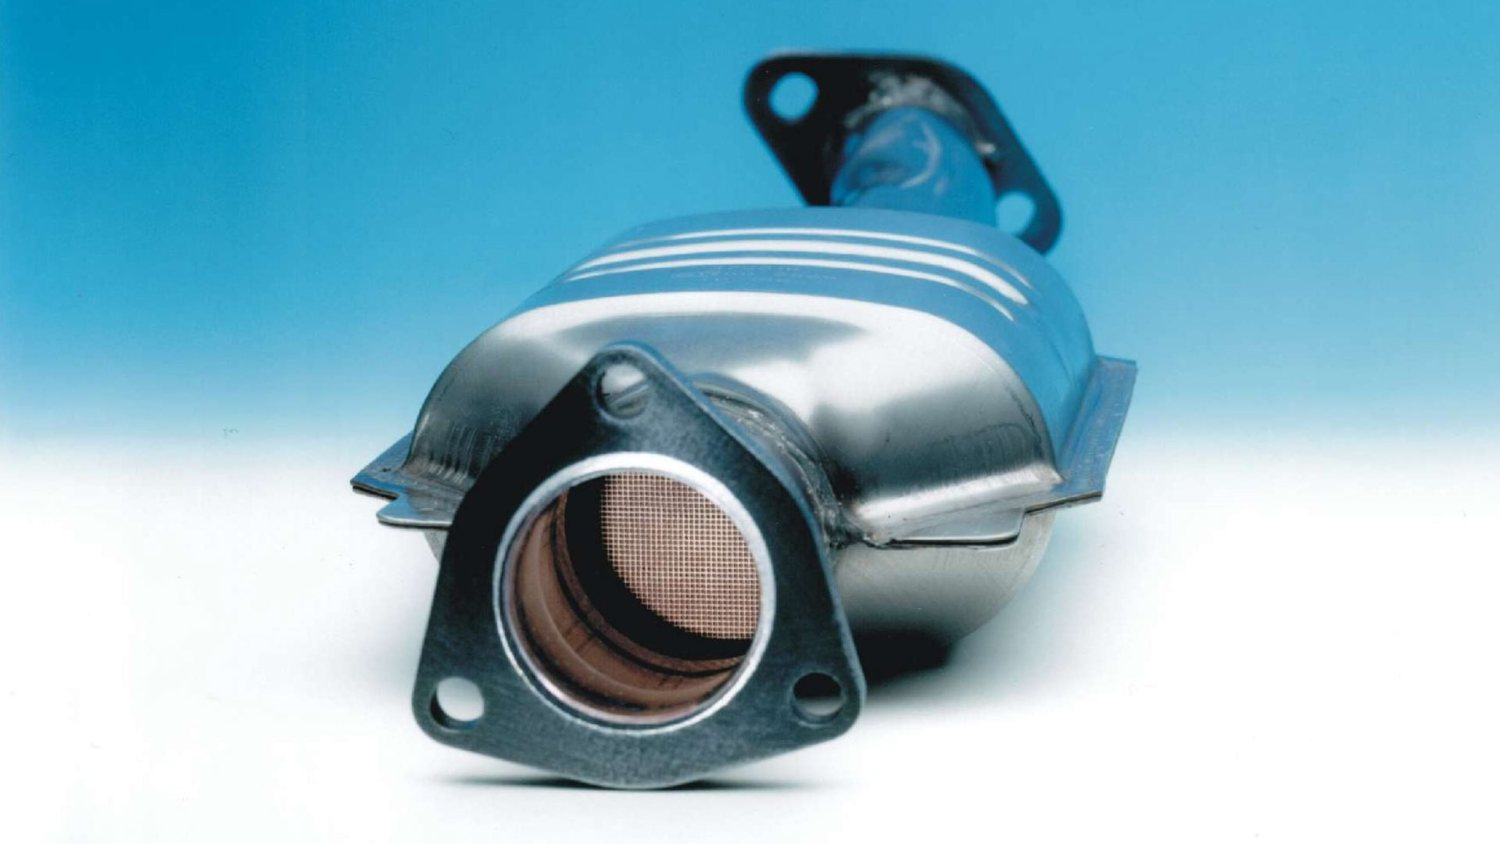 Hybrid Catalytic Converter Thefts